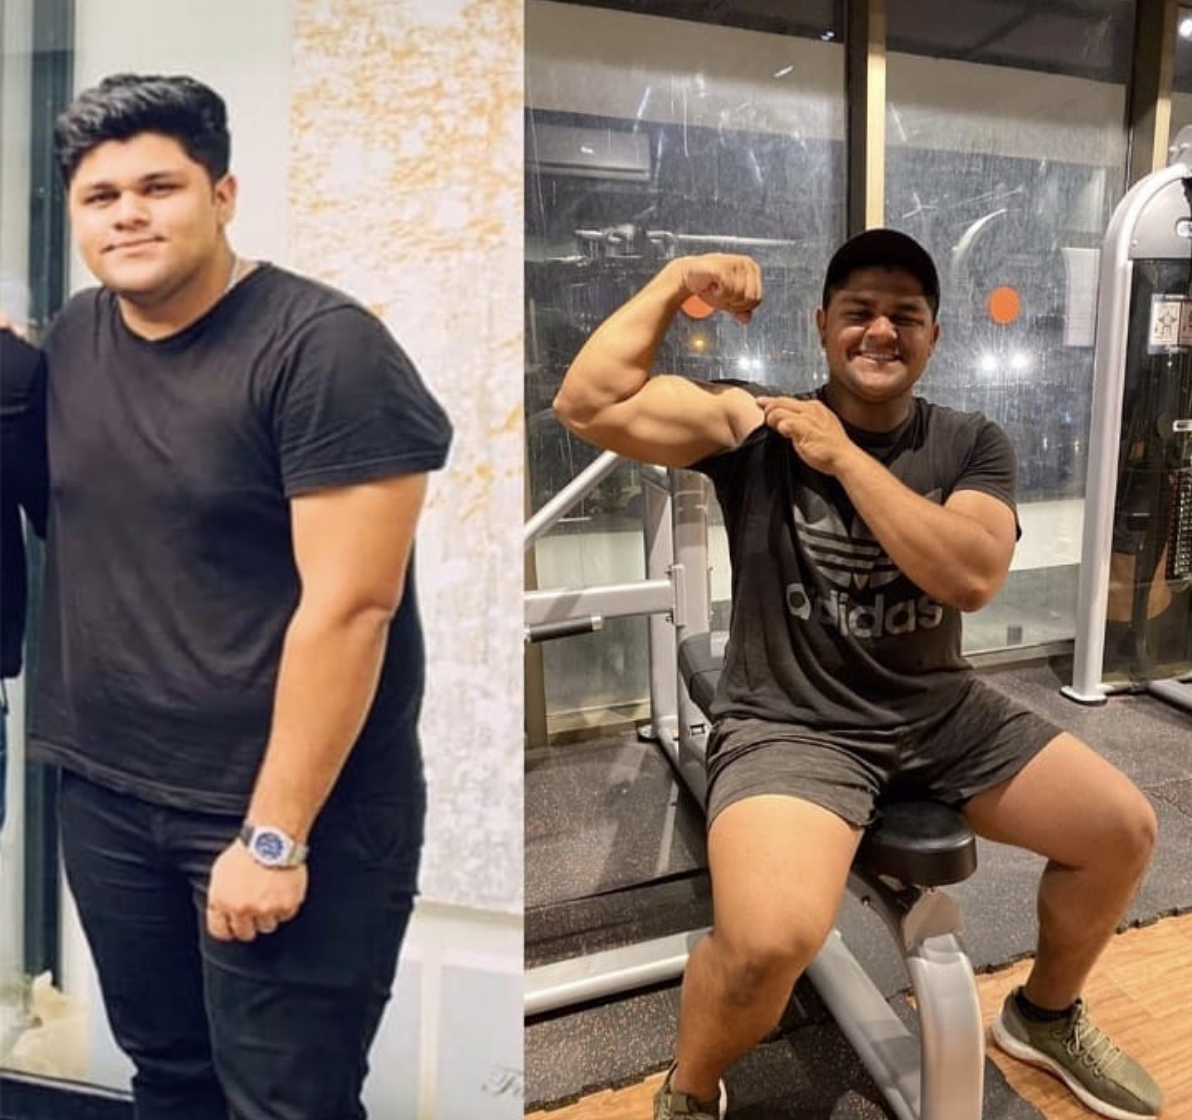 The transformation of Azam Khan who lost a lot of weight in a short period of time